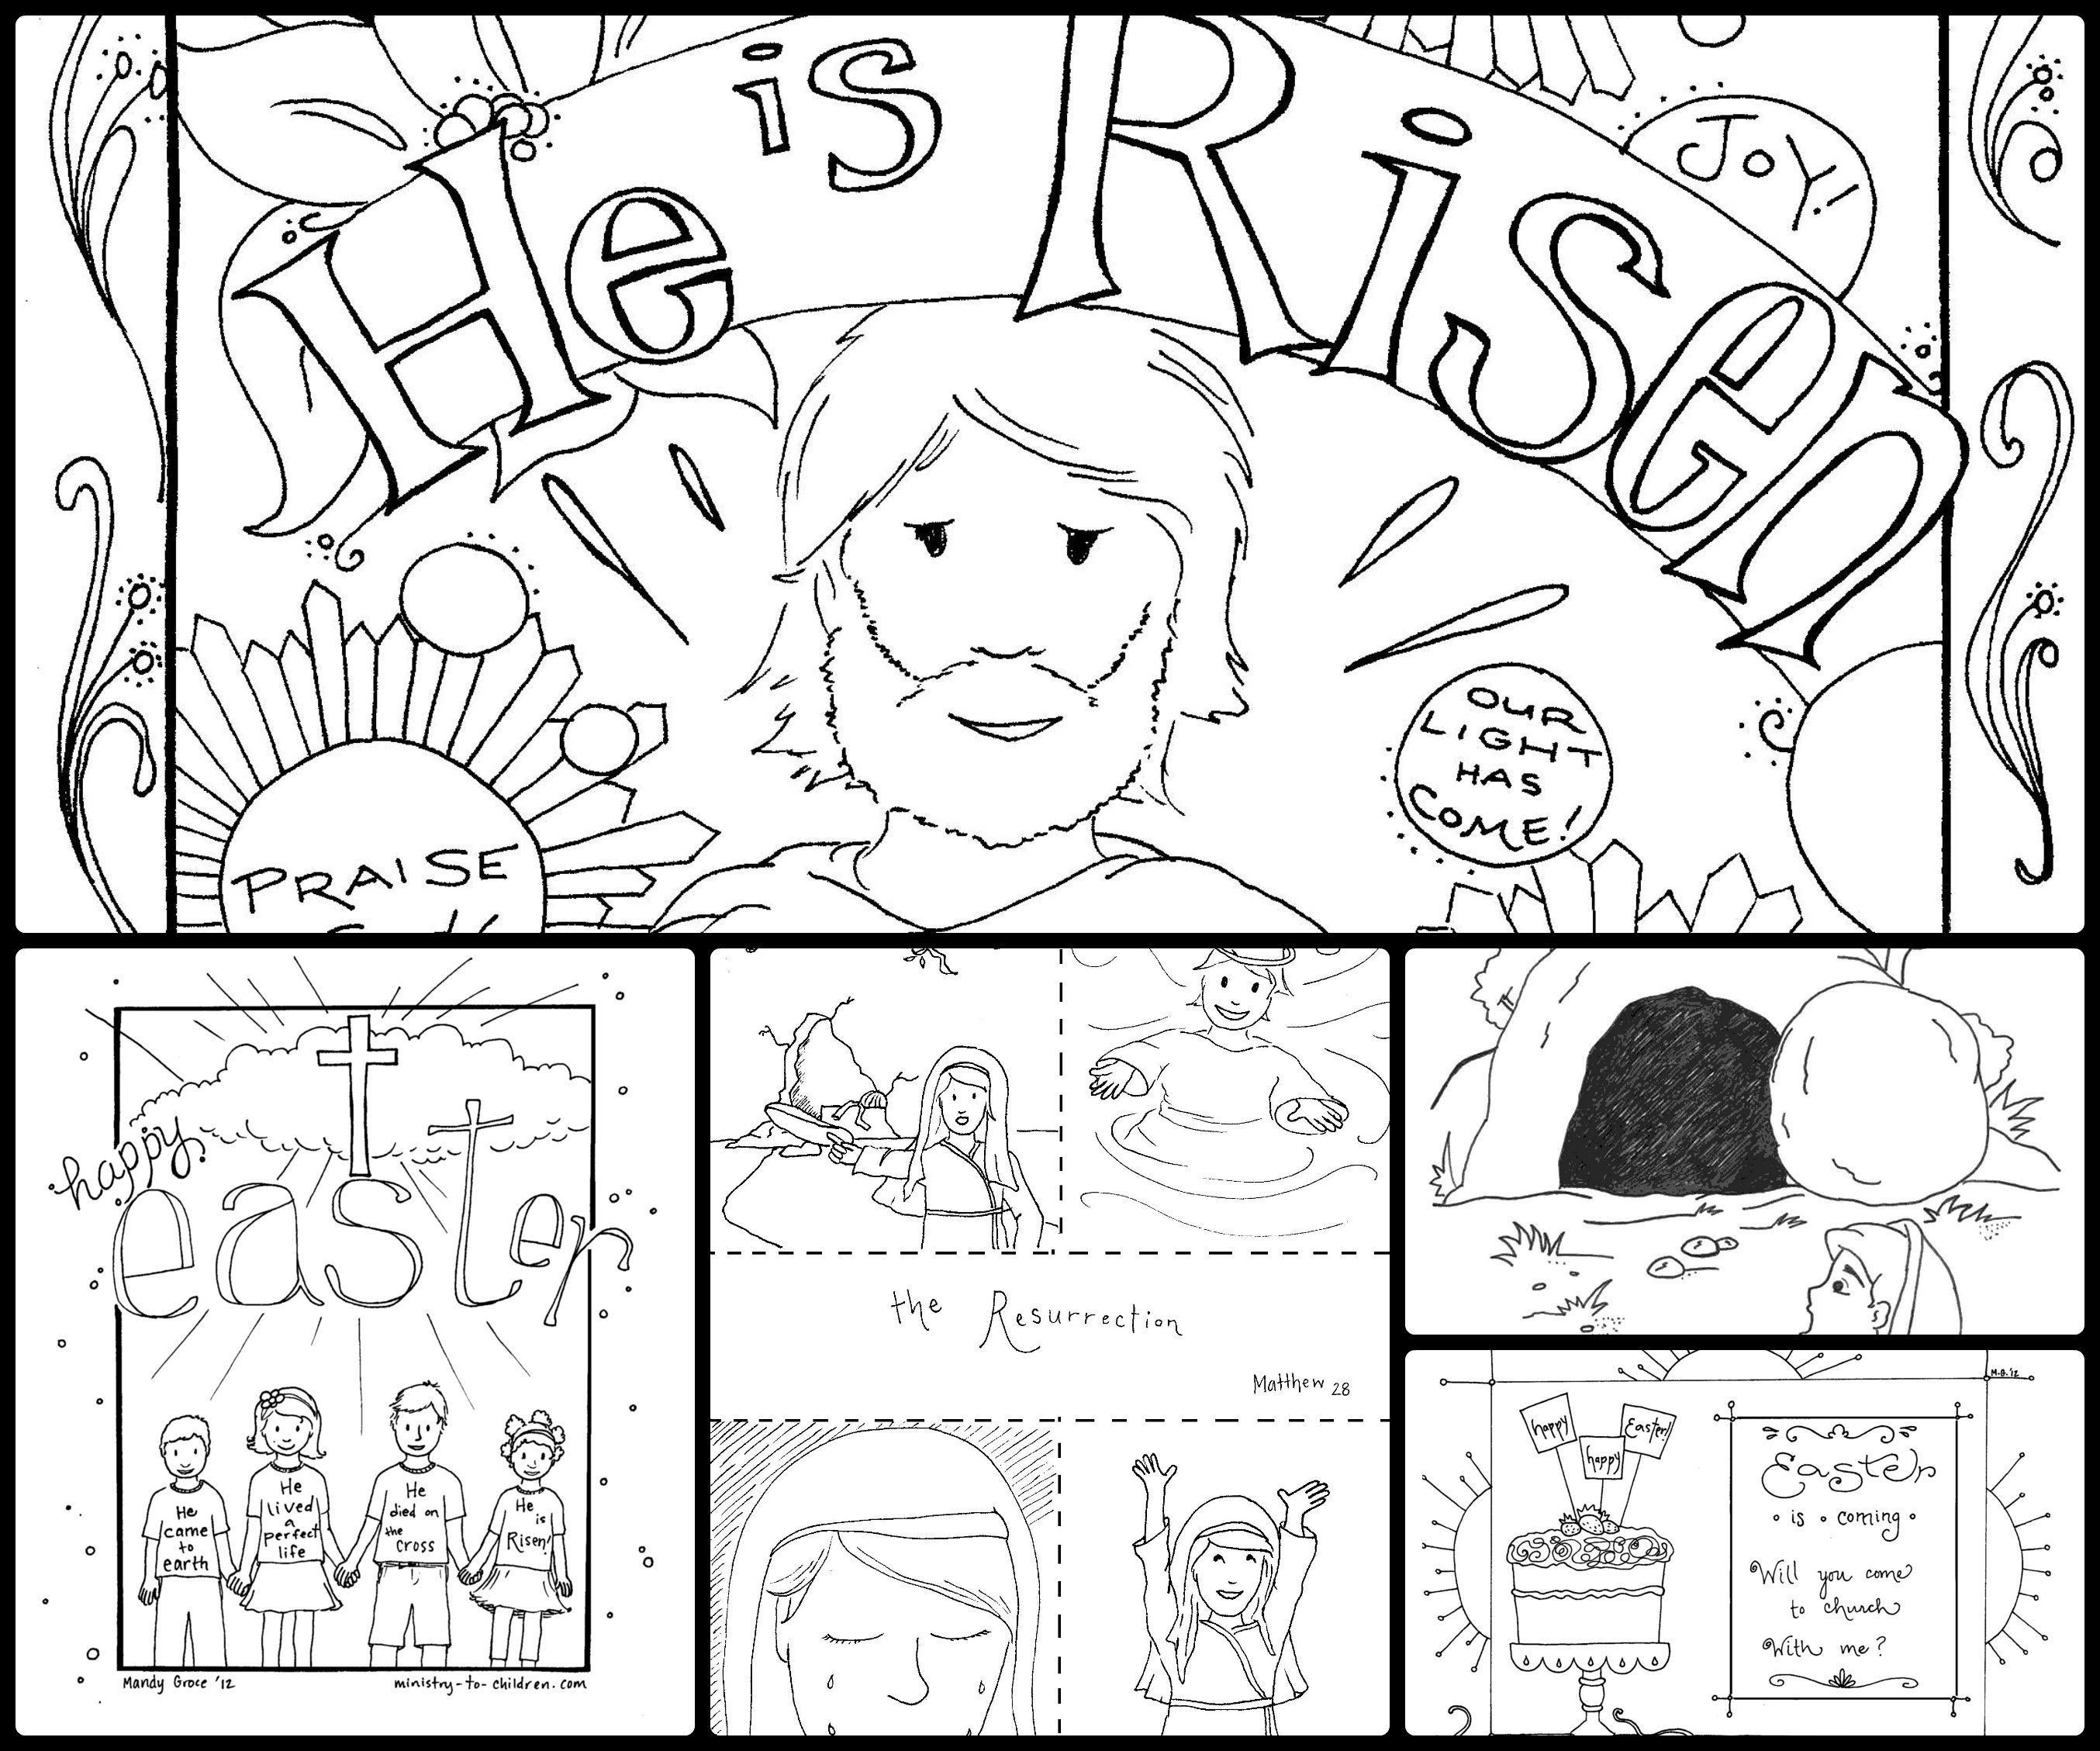 Bible Story Coloring Pages Free Bible Story Coloring Pages Beautiful Photos Religious Easter